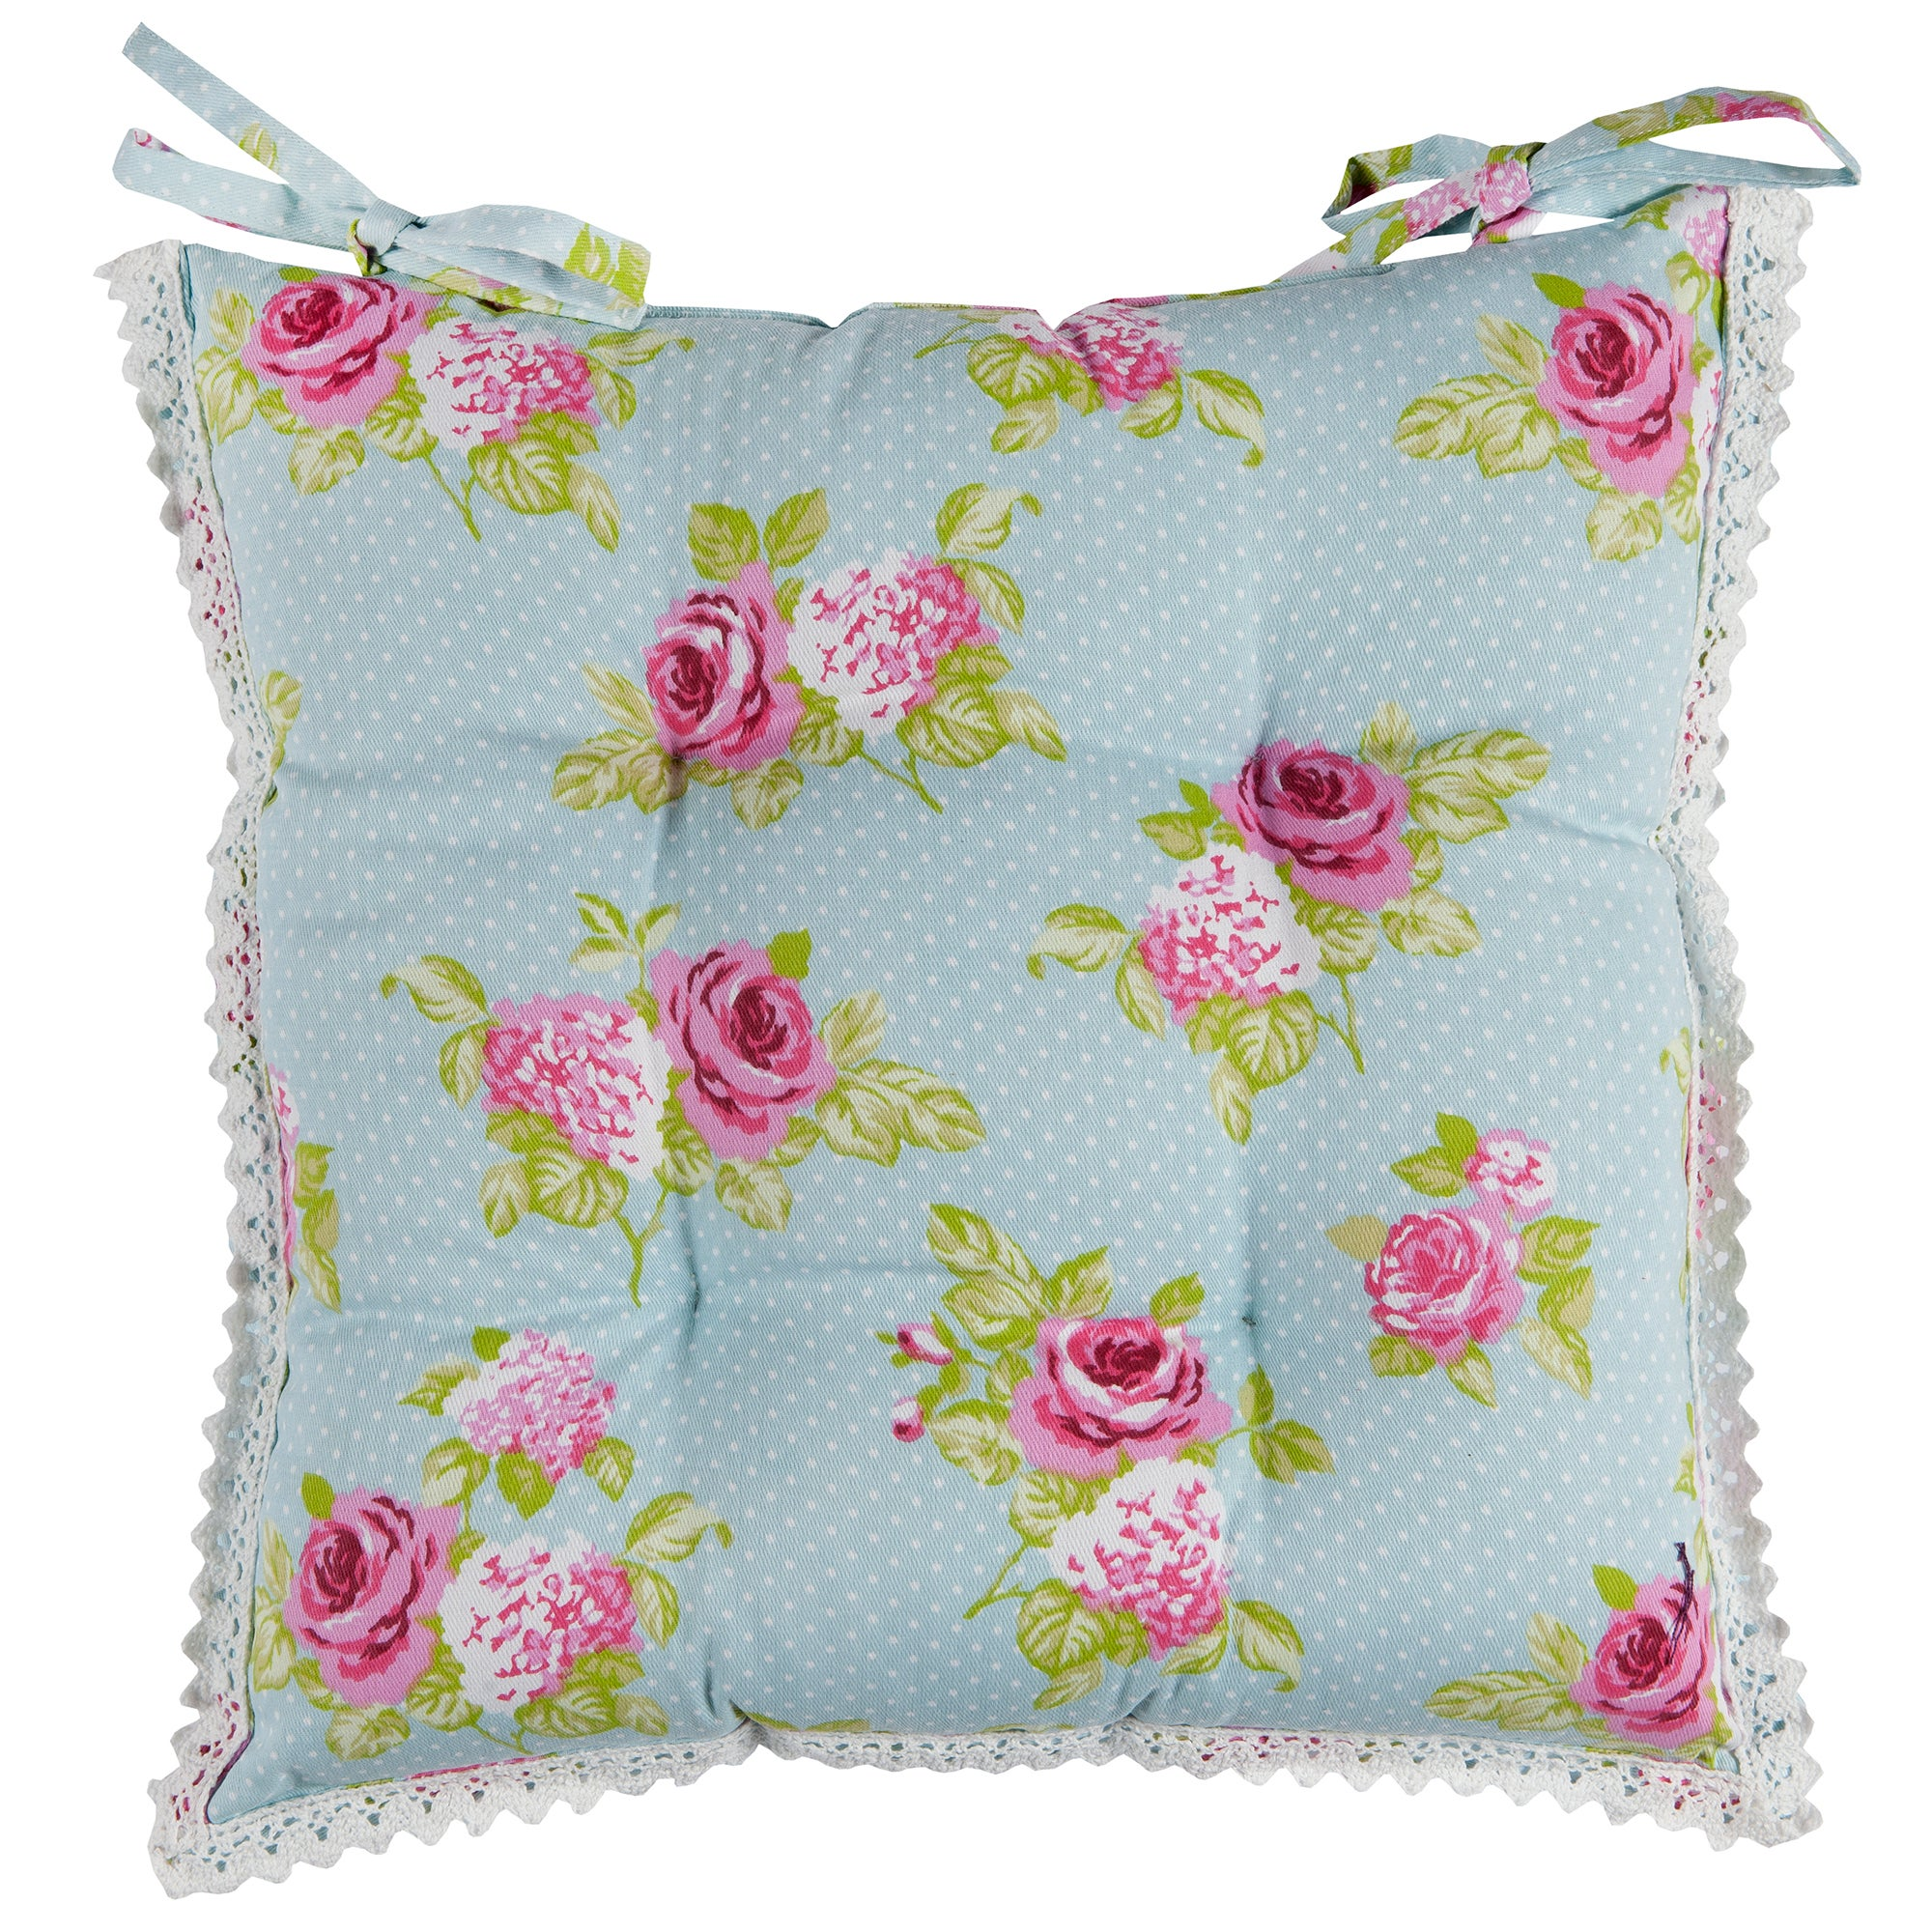 Rose and Ellis Clarendon Collection Seat Pad